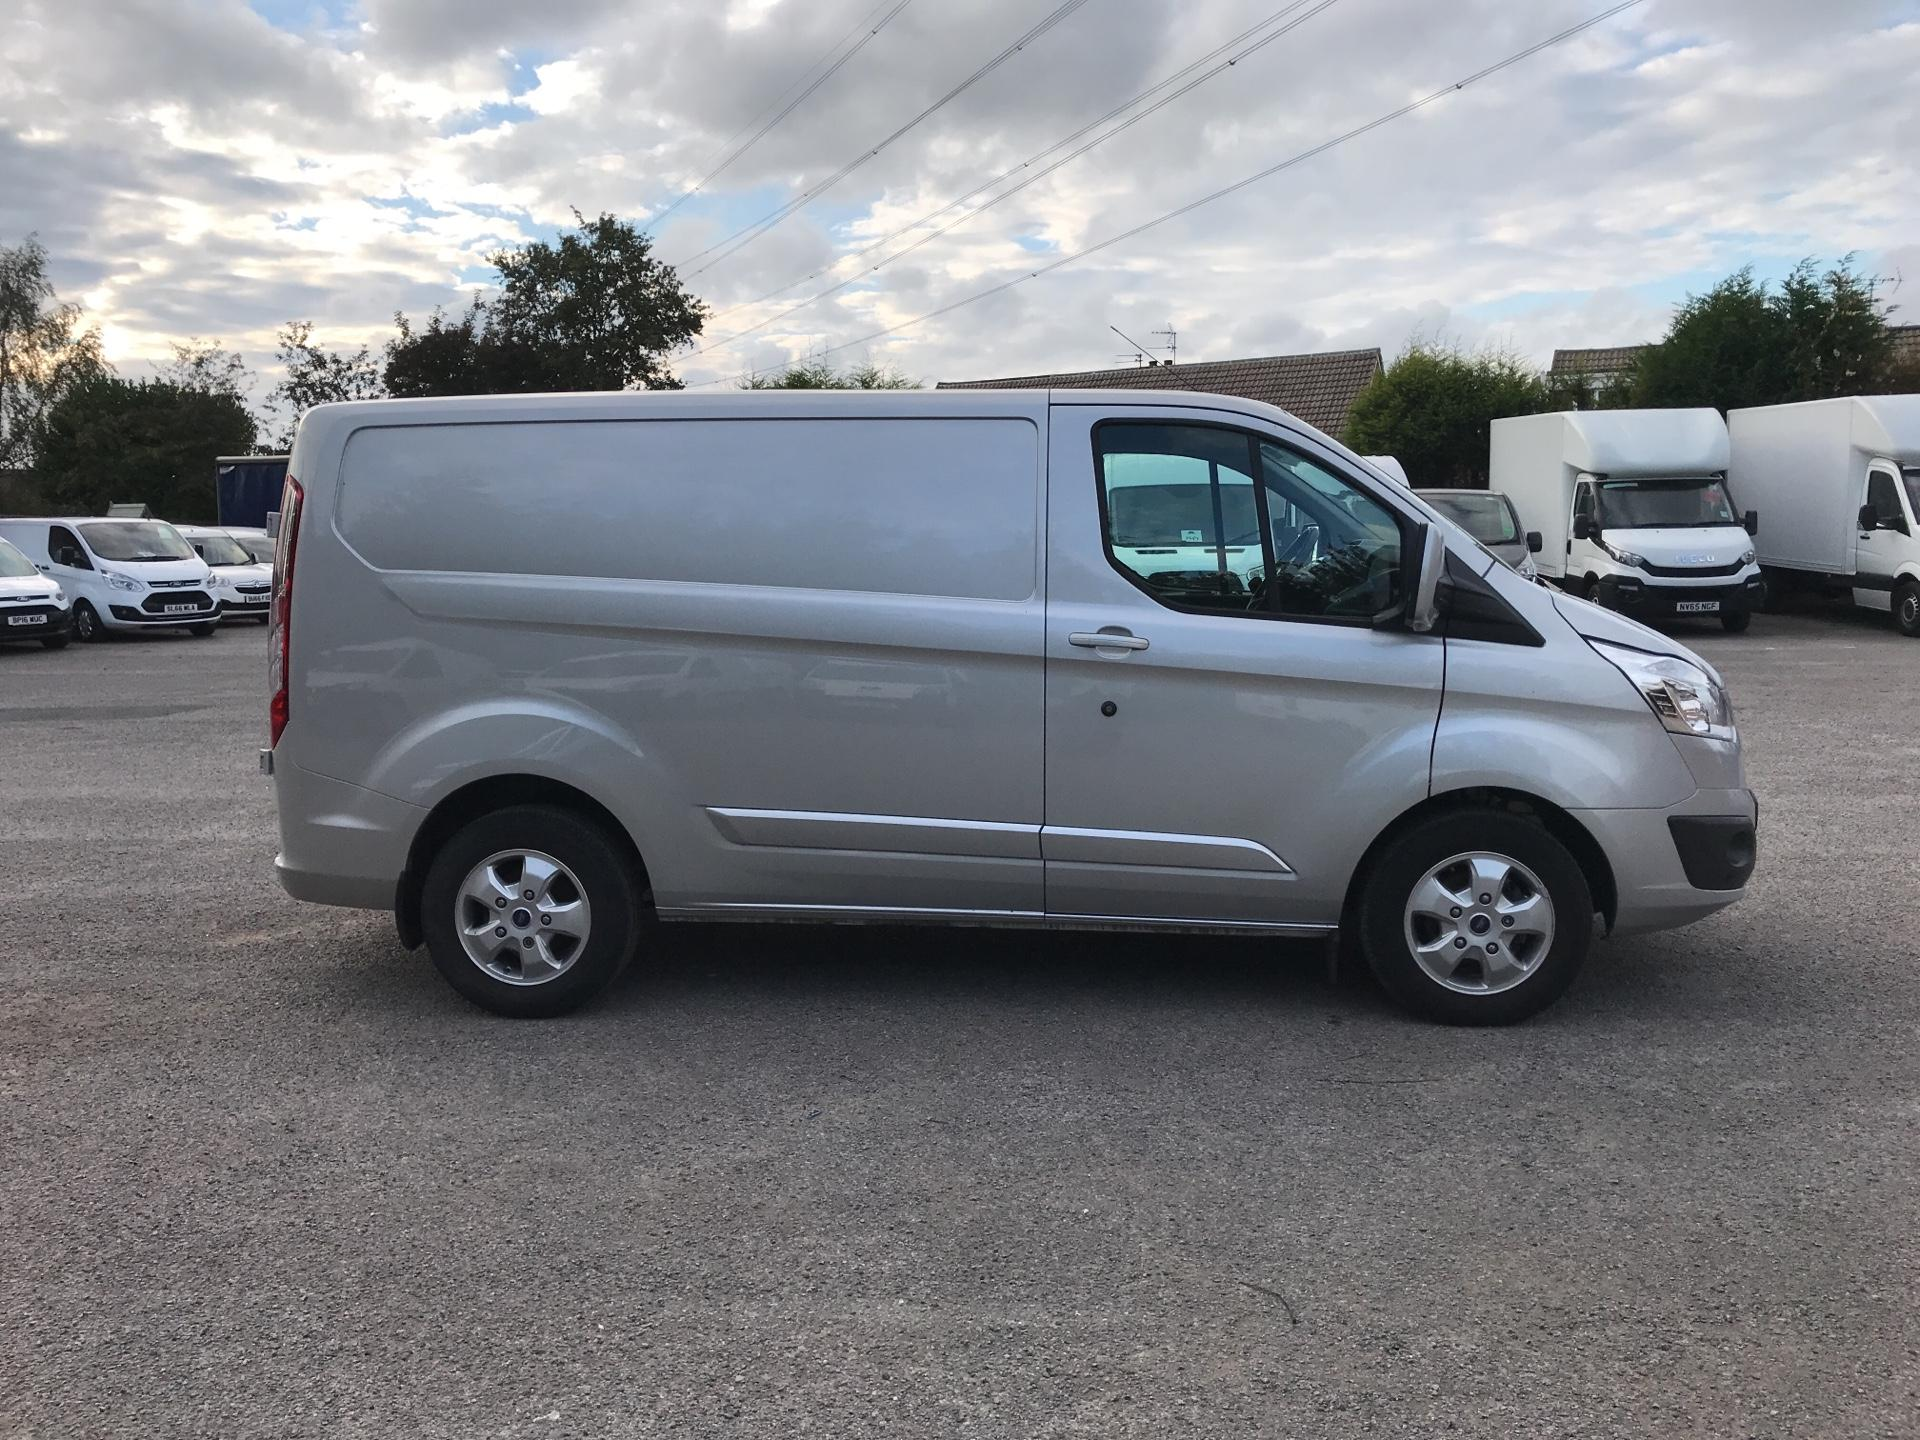 2017 Ford Transit Custom 270 L1 DIESEL FWD 2.0 TDCI 130PS LOW ROOF LIMITED VAN EURO 6 (KR17JWL) Image 2